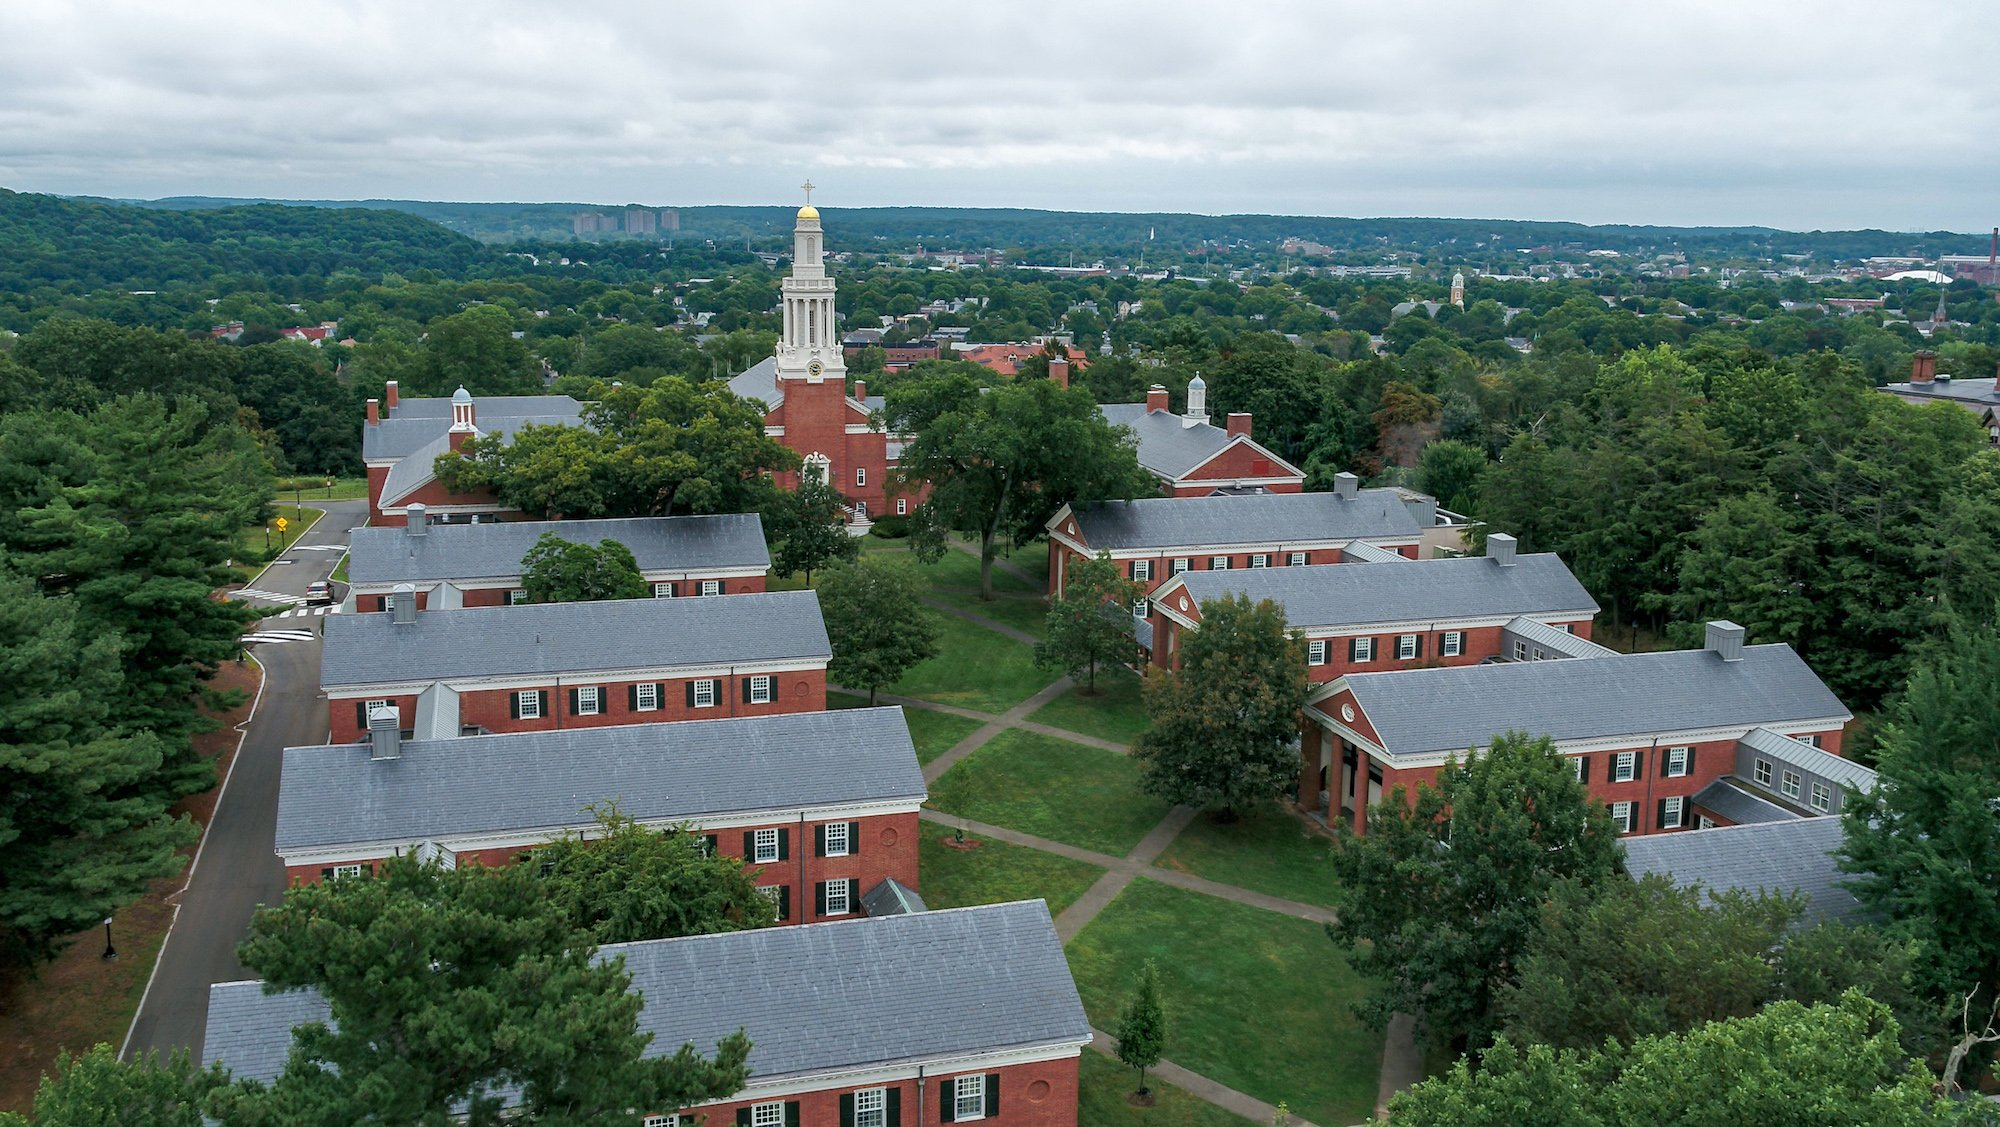 Aerial photograph of Yale University, Divinity Campus by AirShark UAS Services